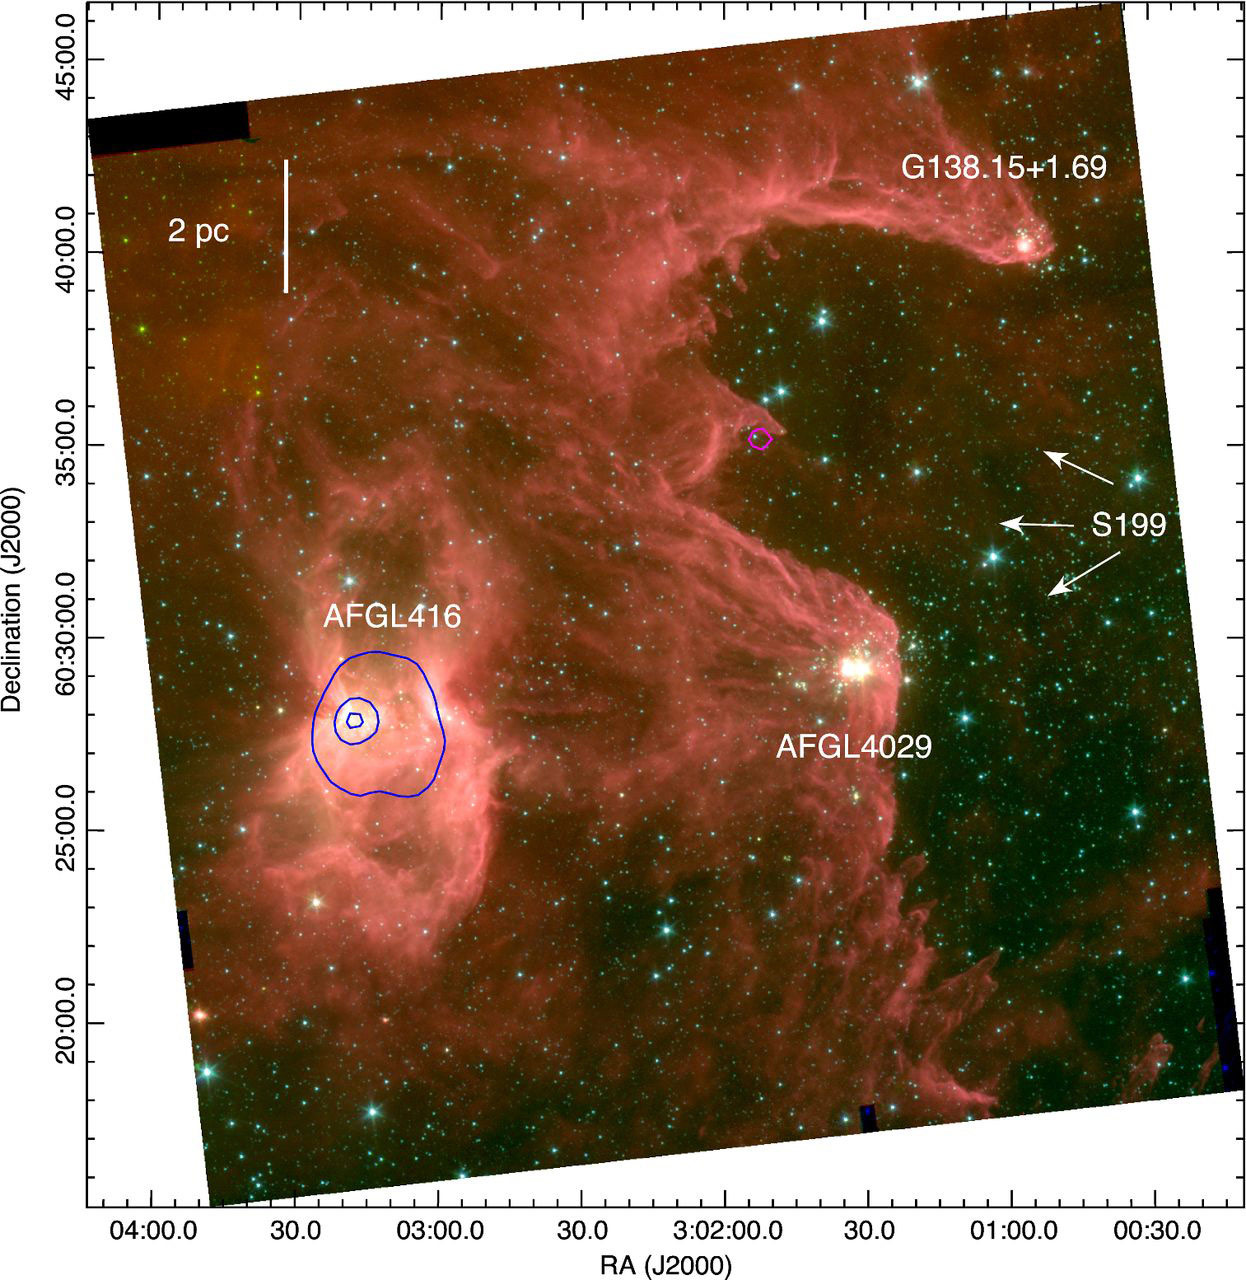 ... S252, S254-S258 and NGC7538, revealing clusters of massive new stars